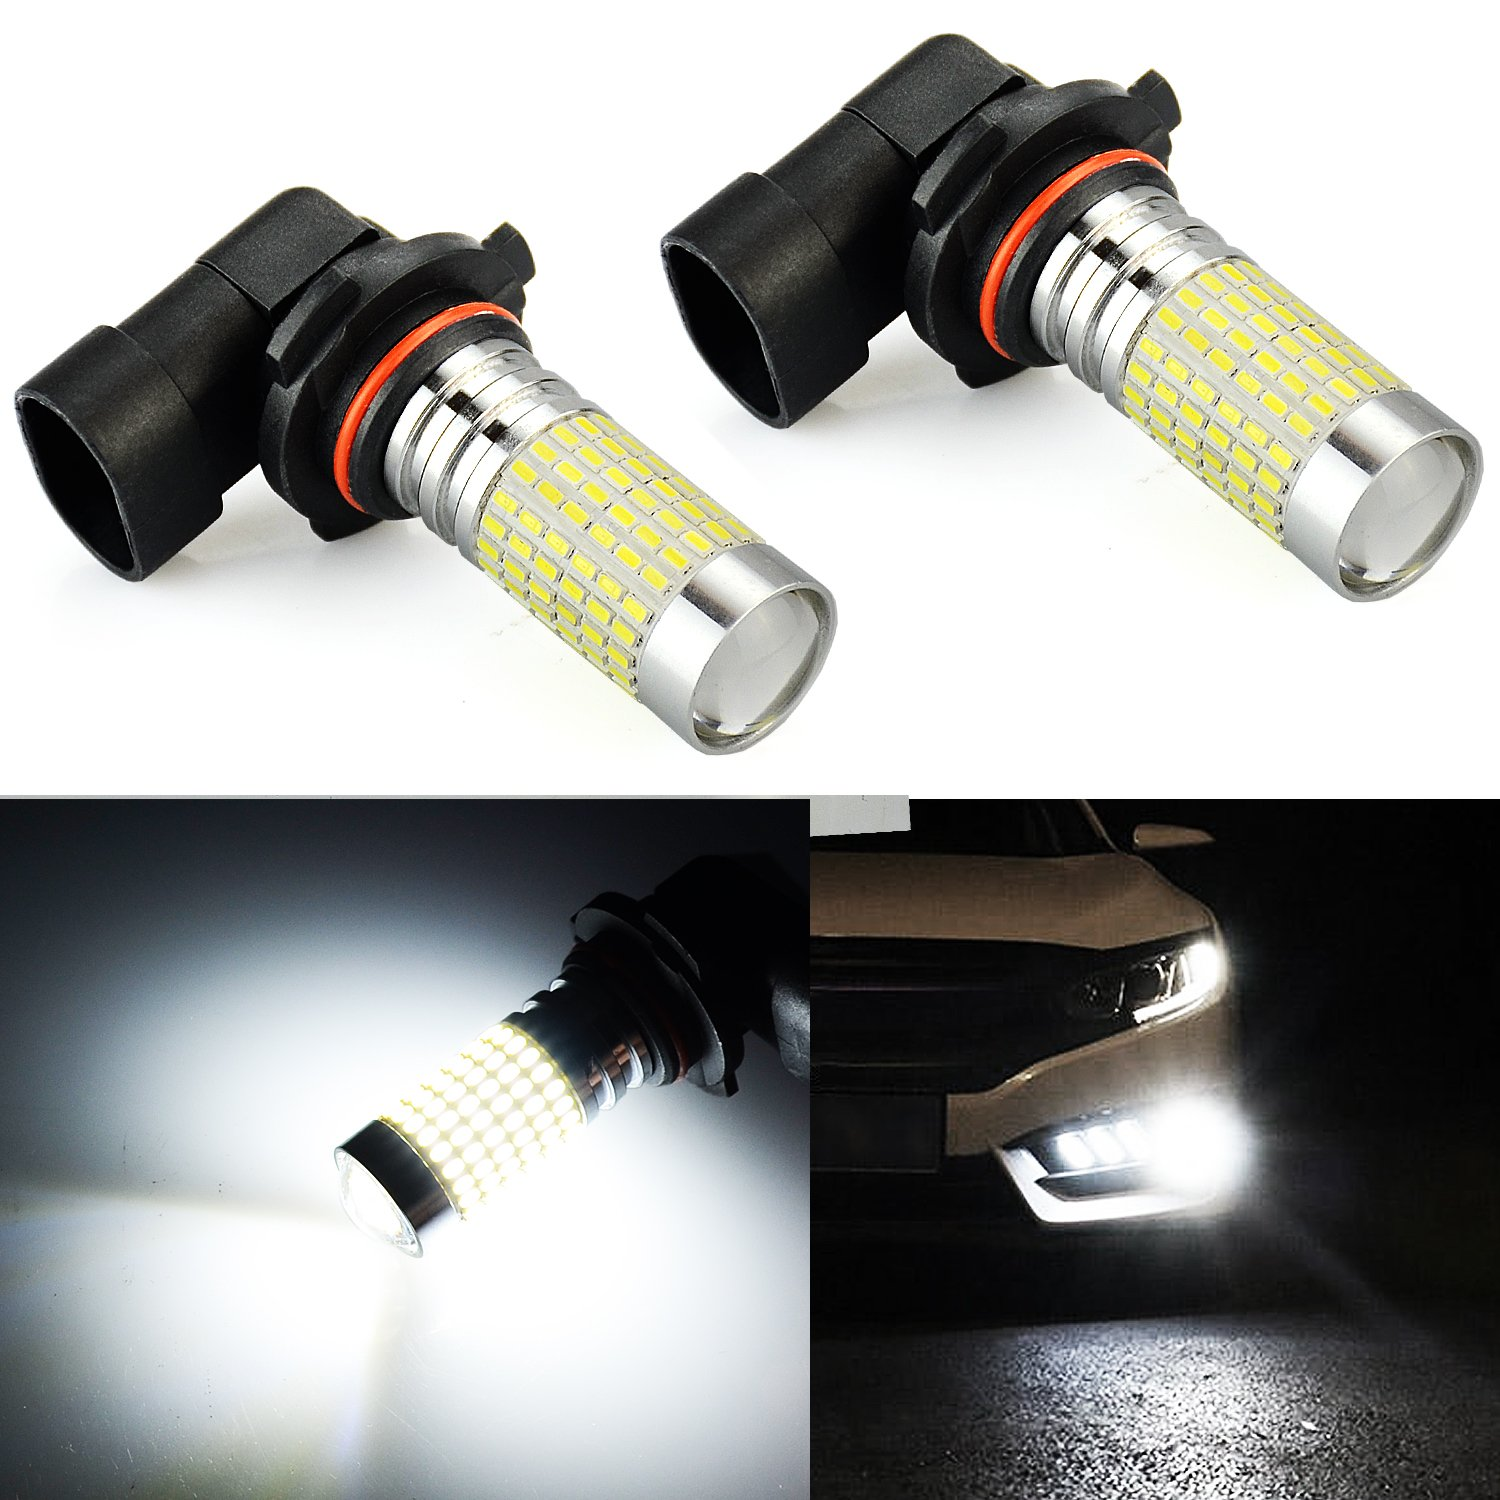 JDM ASTAR 2400 Lumens Extremely Bright 144-EX Chips H10 9140 9145 9050 9155 LED Fog Light Bulbs with Projector for DRL or Fog Lights, Xenon White (H10/9140/9145)